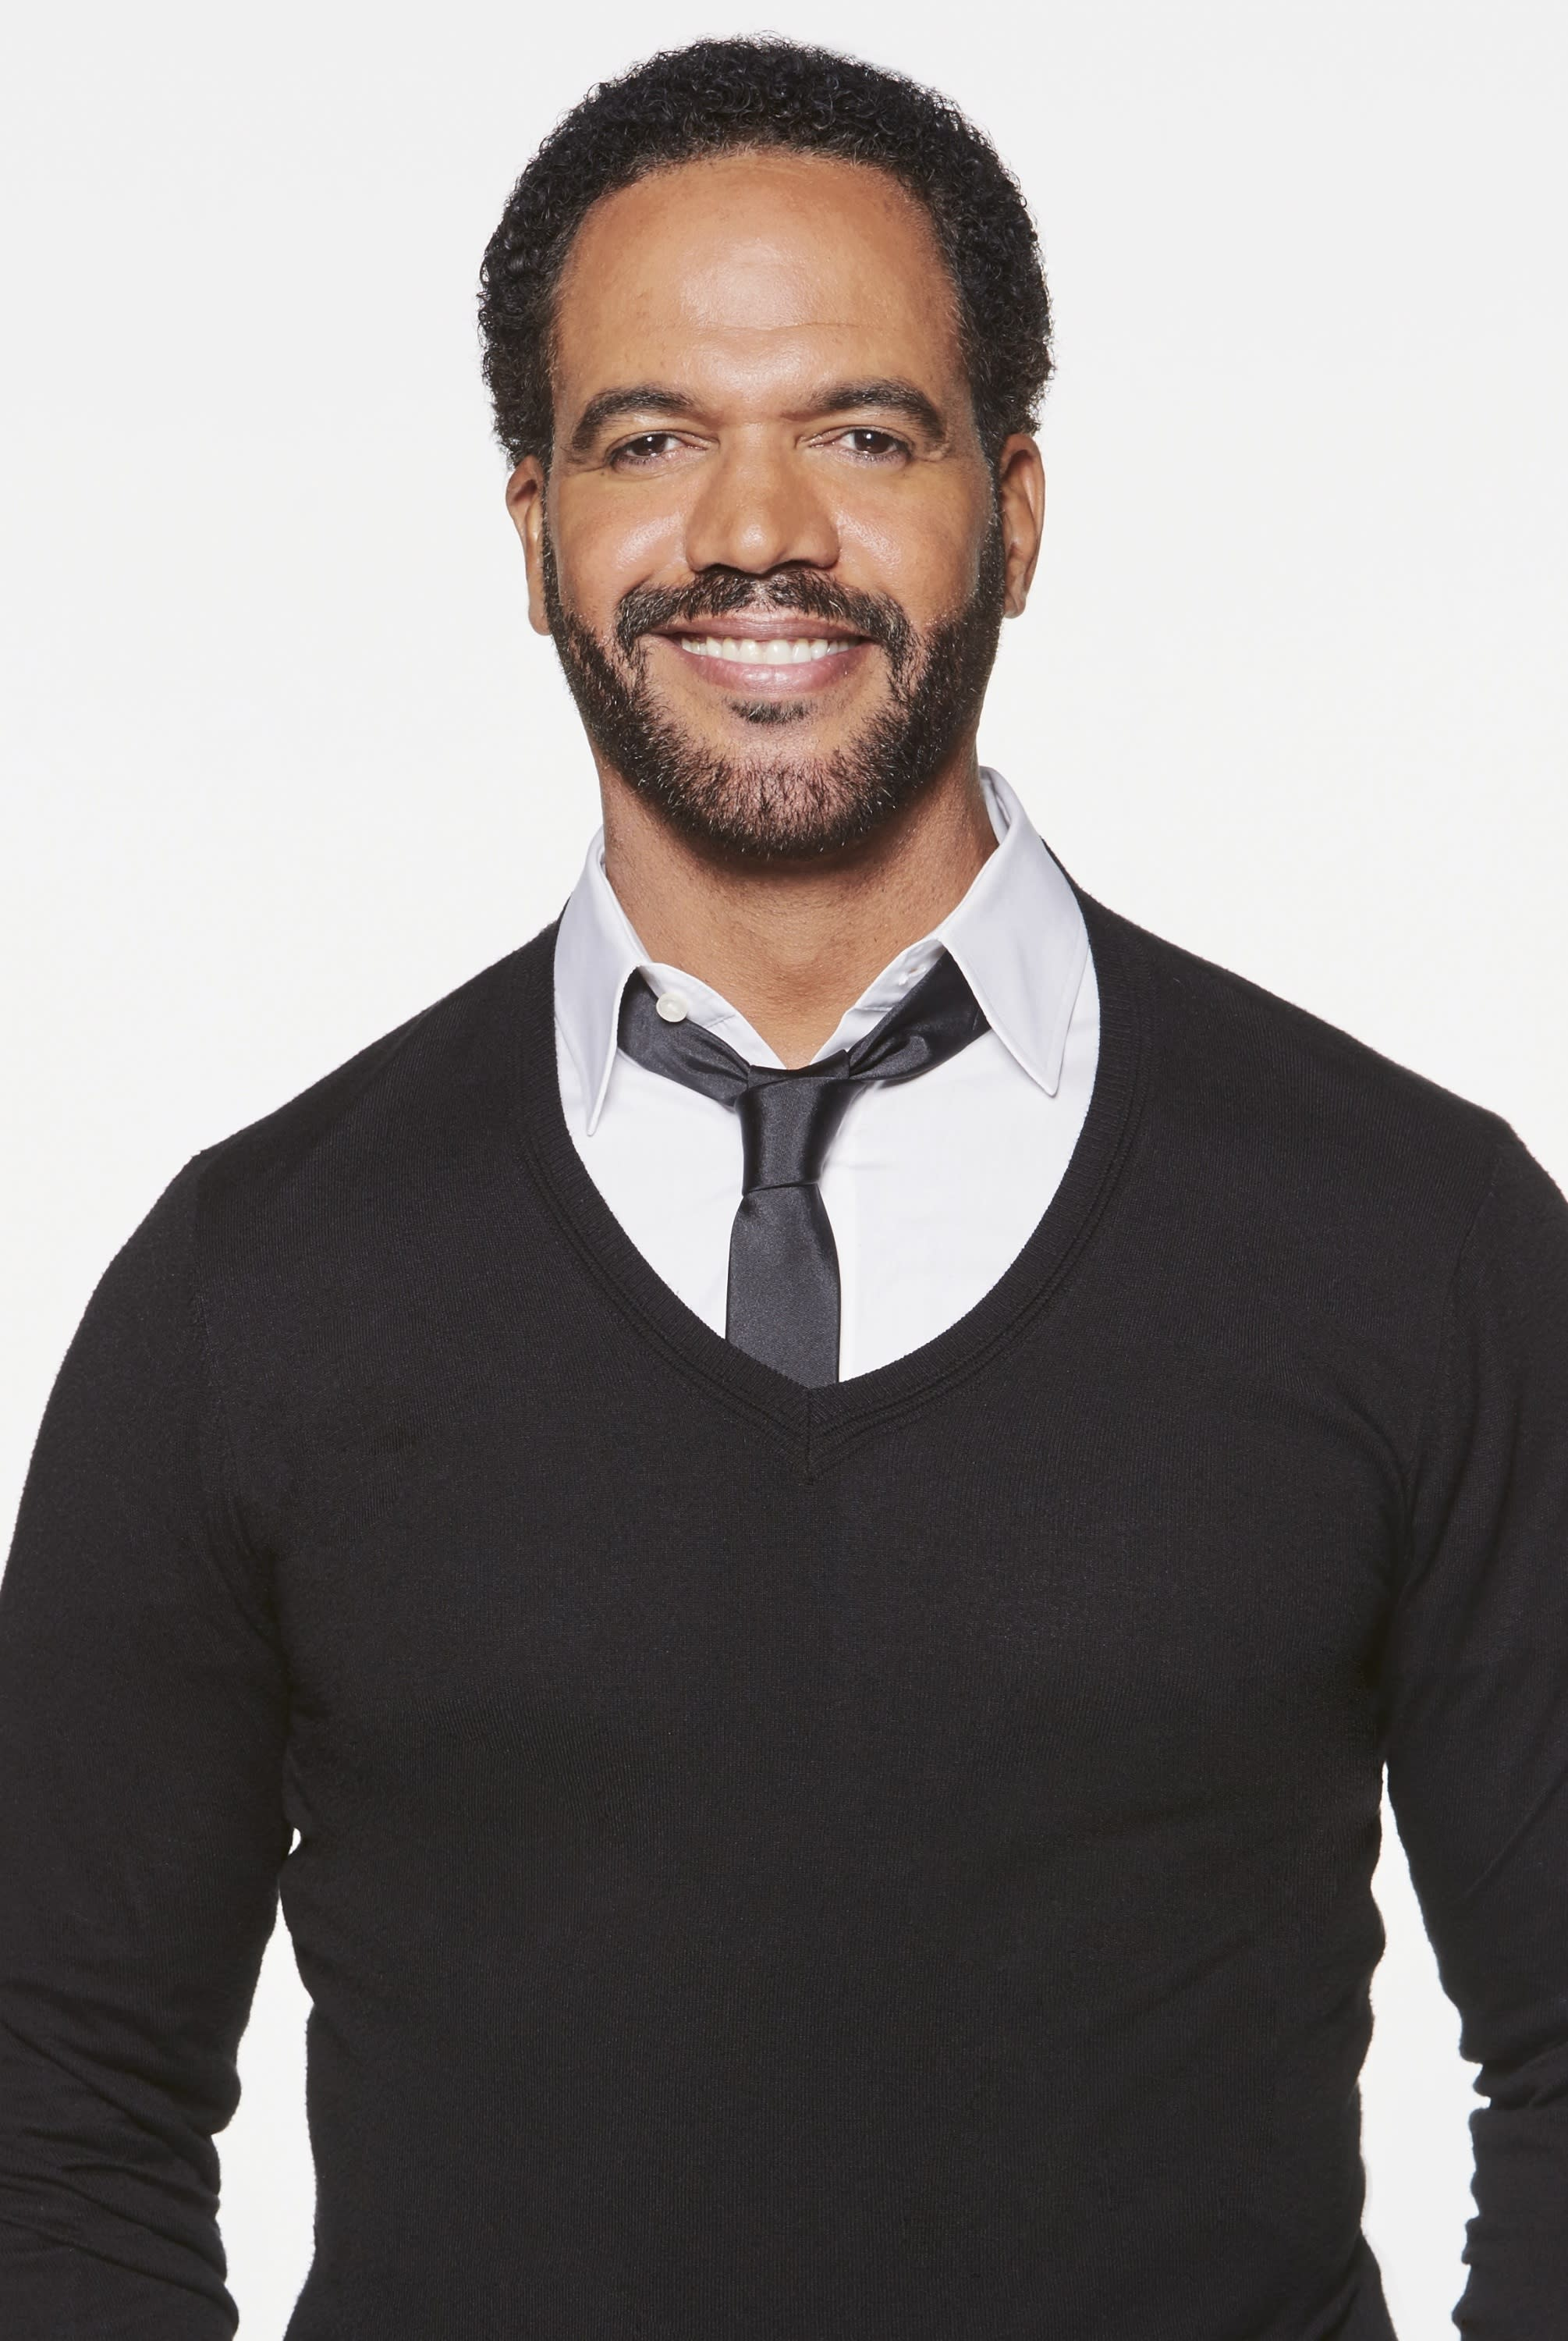 Kristoff St. John, 'Young and the Restless' star, dead at 52